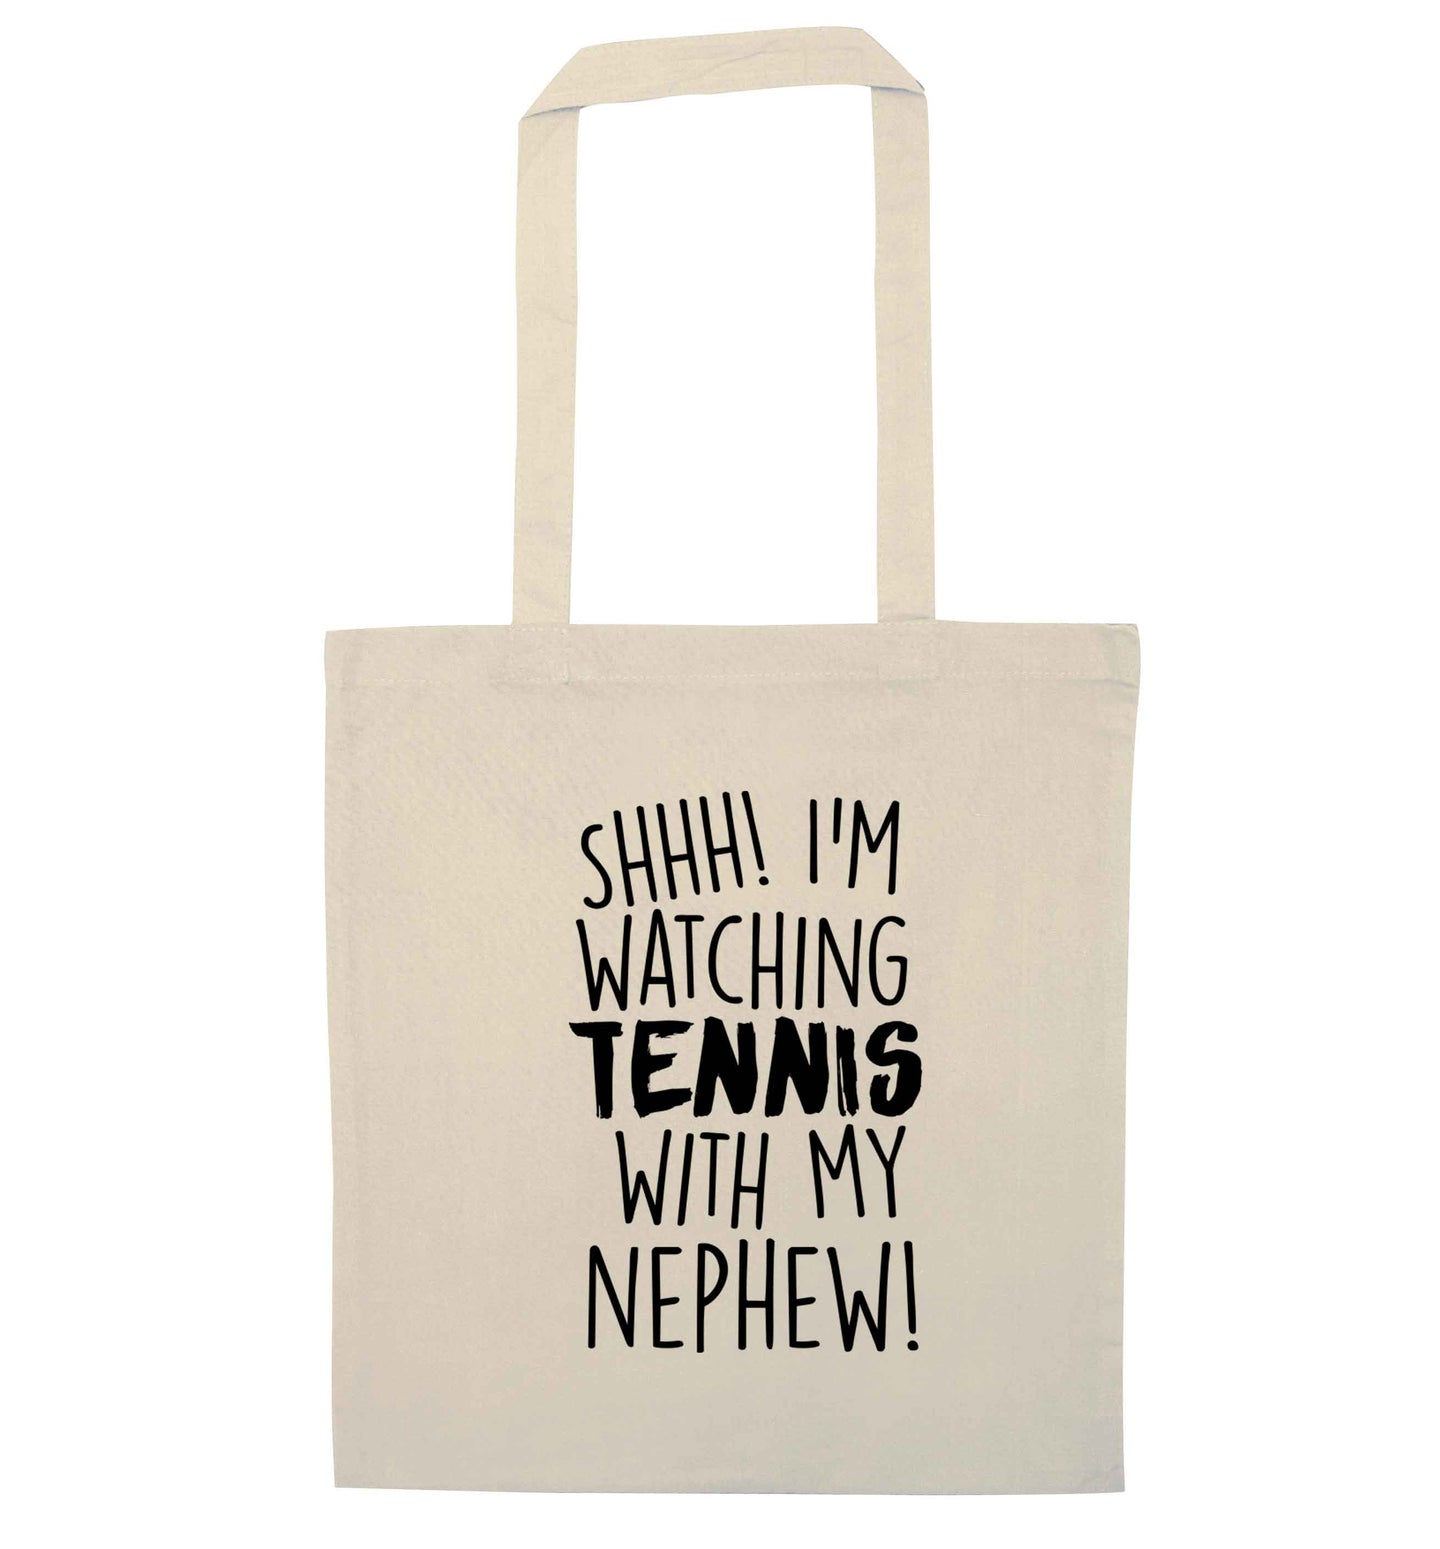 Shh! I'm watching tennis with my nephew! natural tote bag